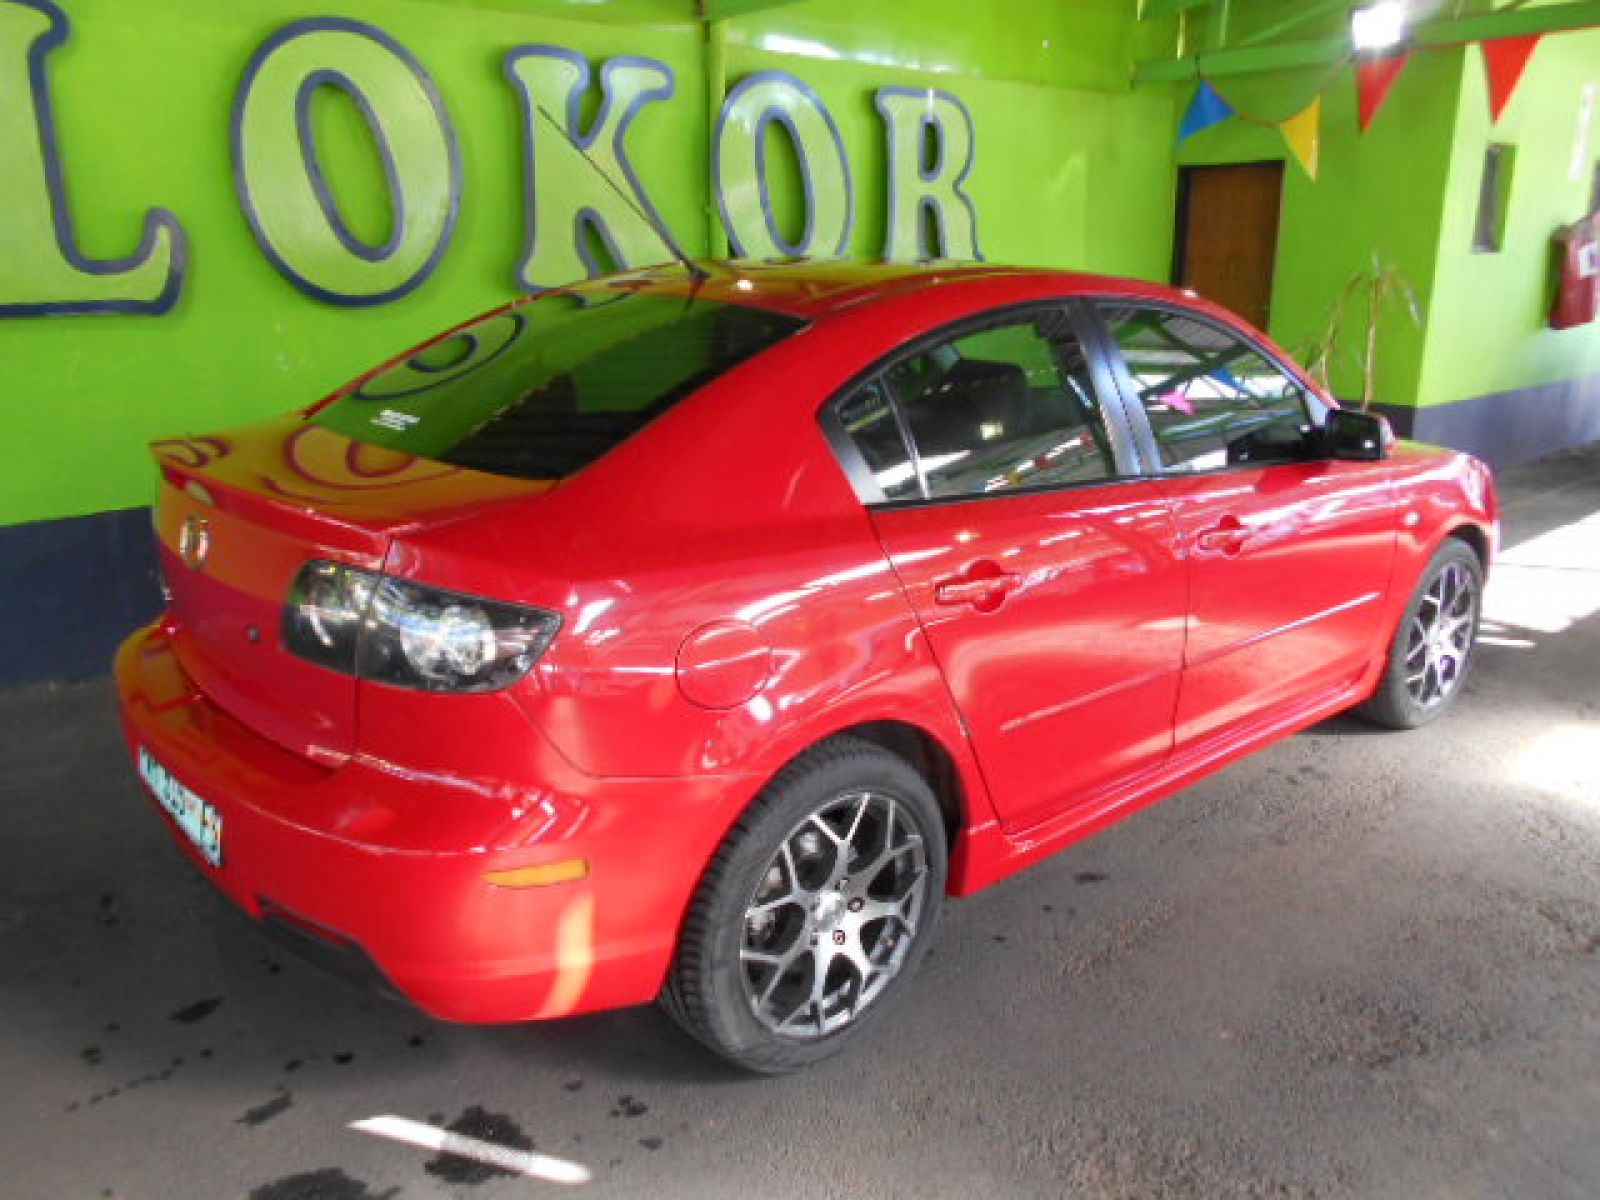 2008 mazda 3 r 119 990 for sale kilokor motors. Black Bedroom Furniture Sets. Home Design Ideas